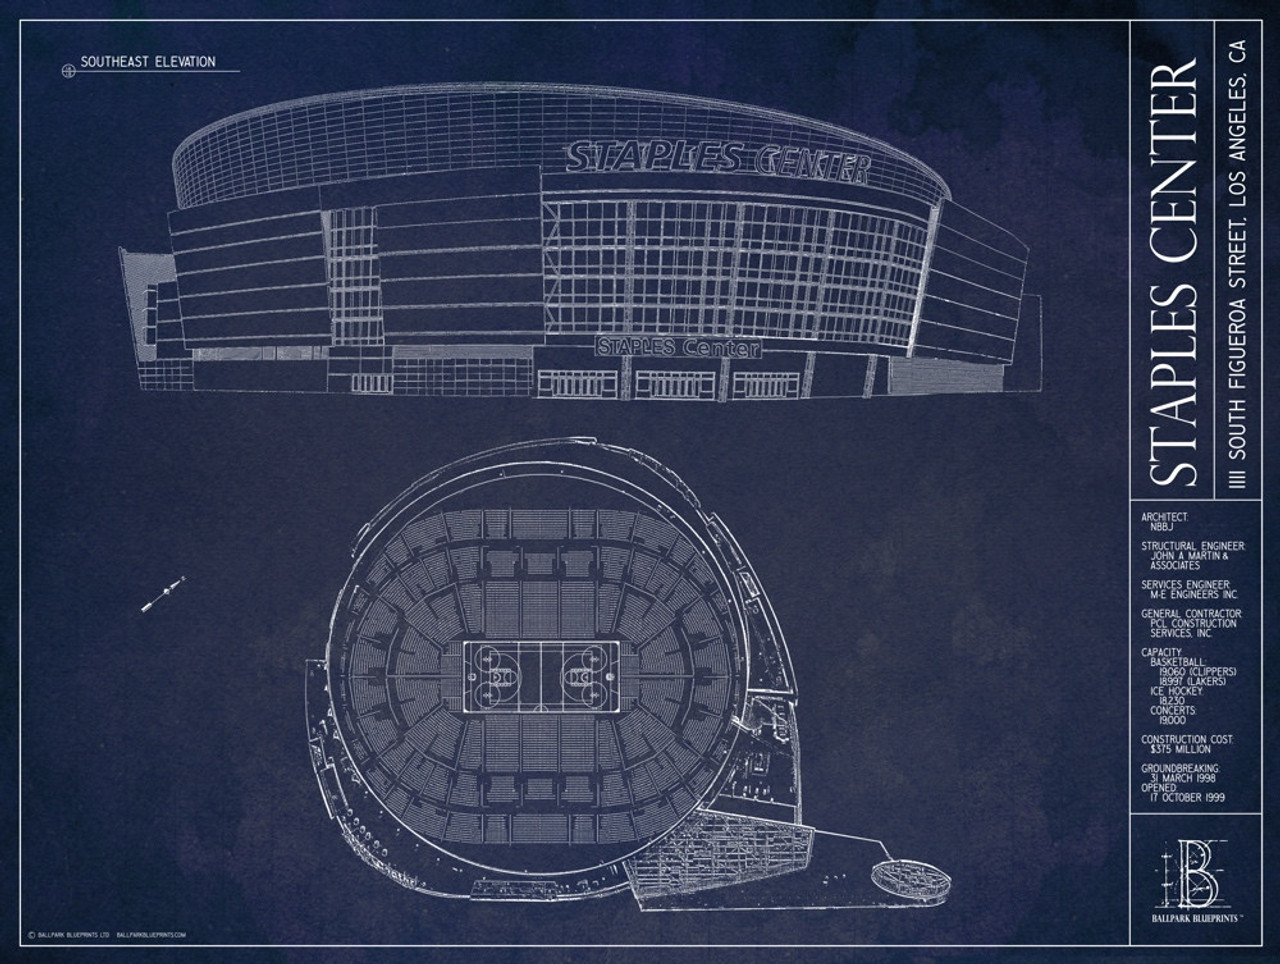 Staples Center Blueprint Poster